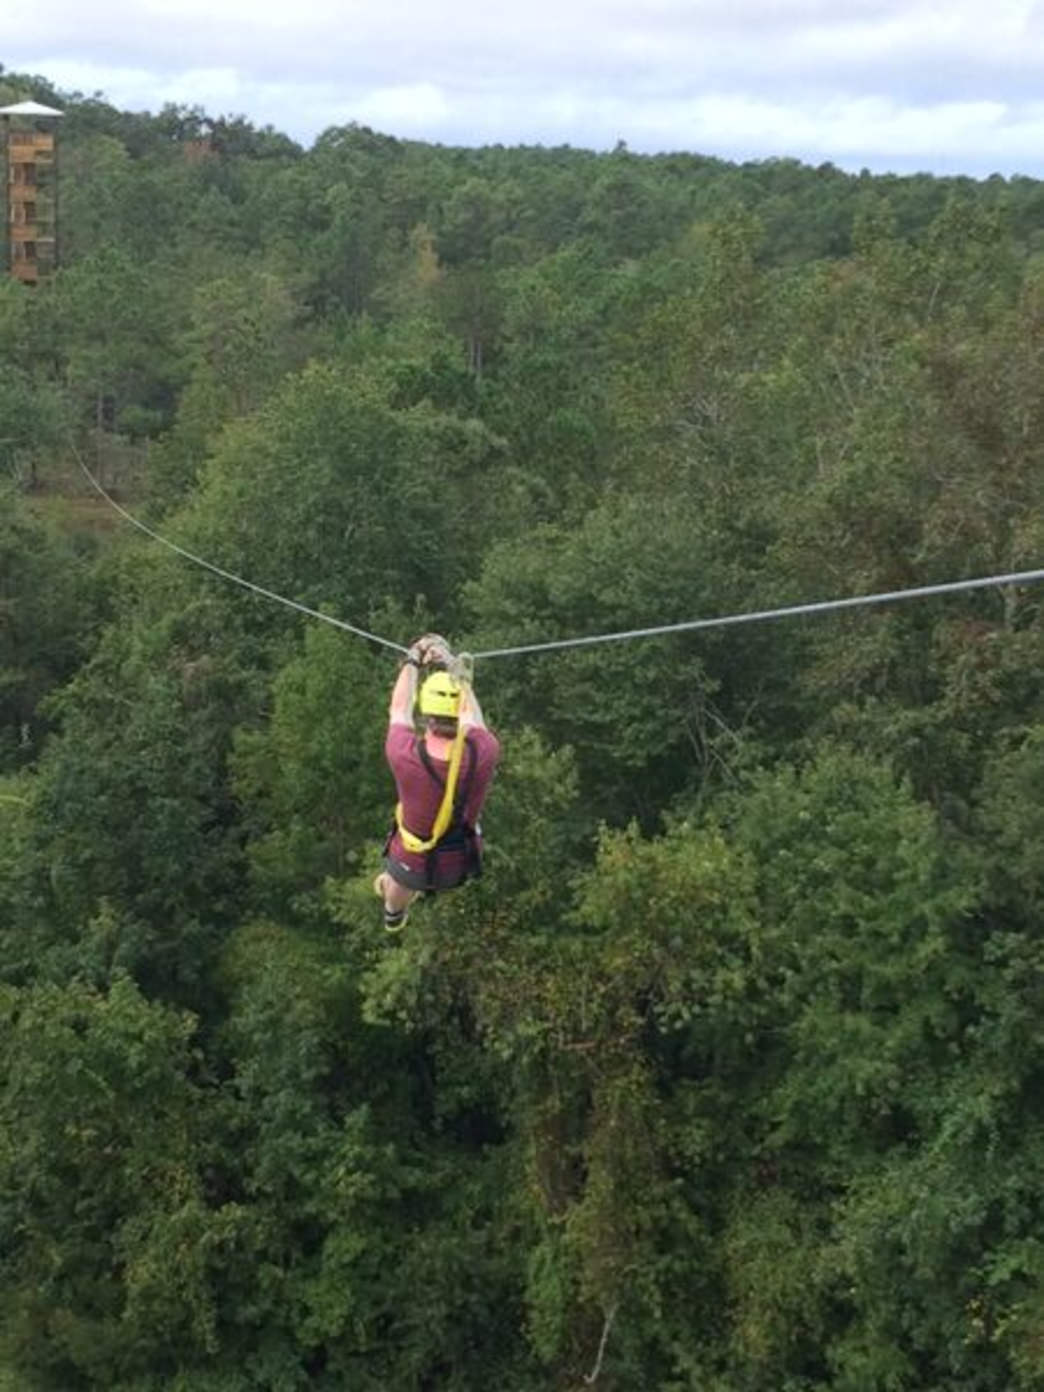 Zip lining at Shallotte River Swamp Park